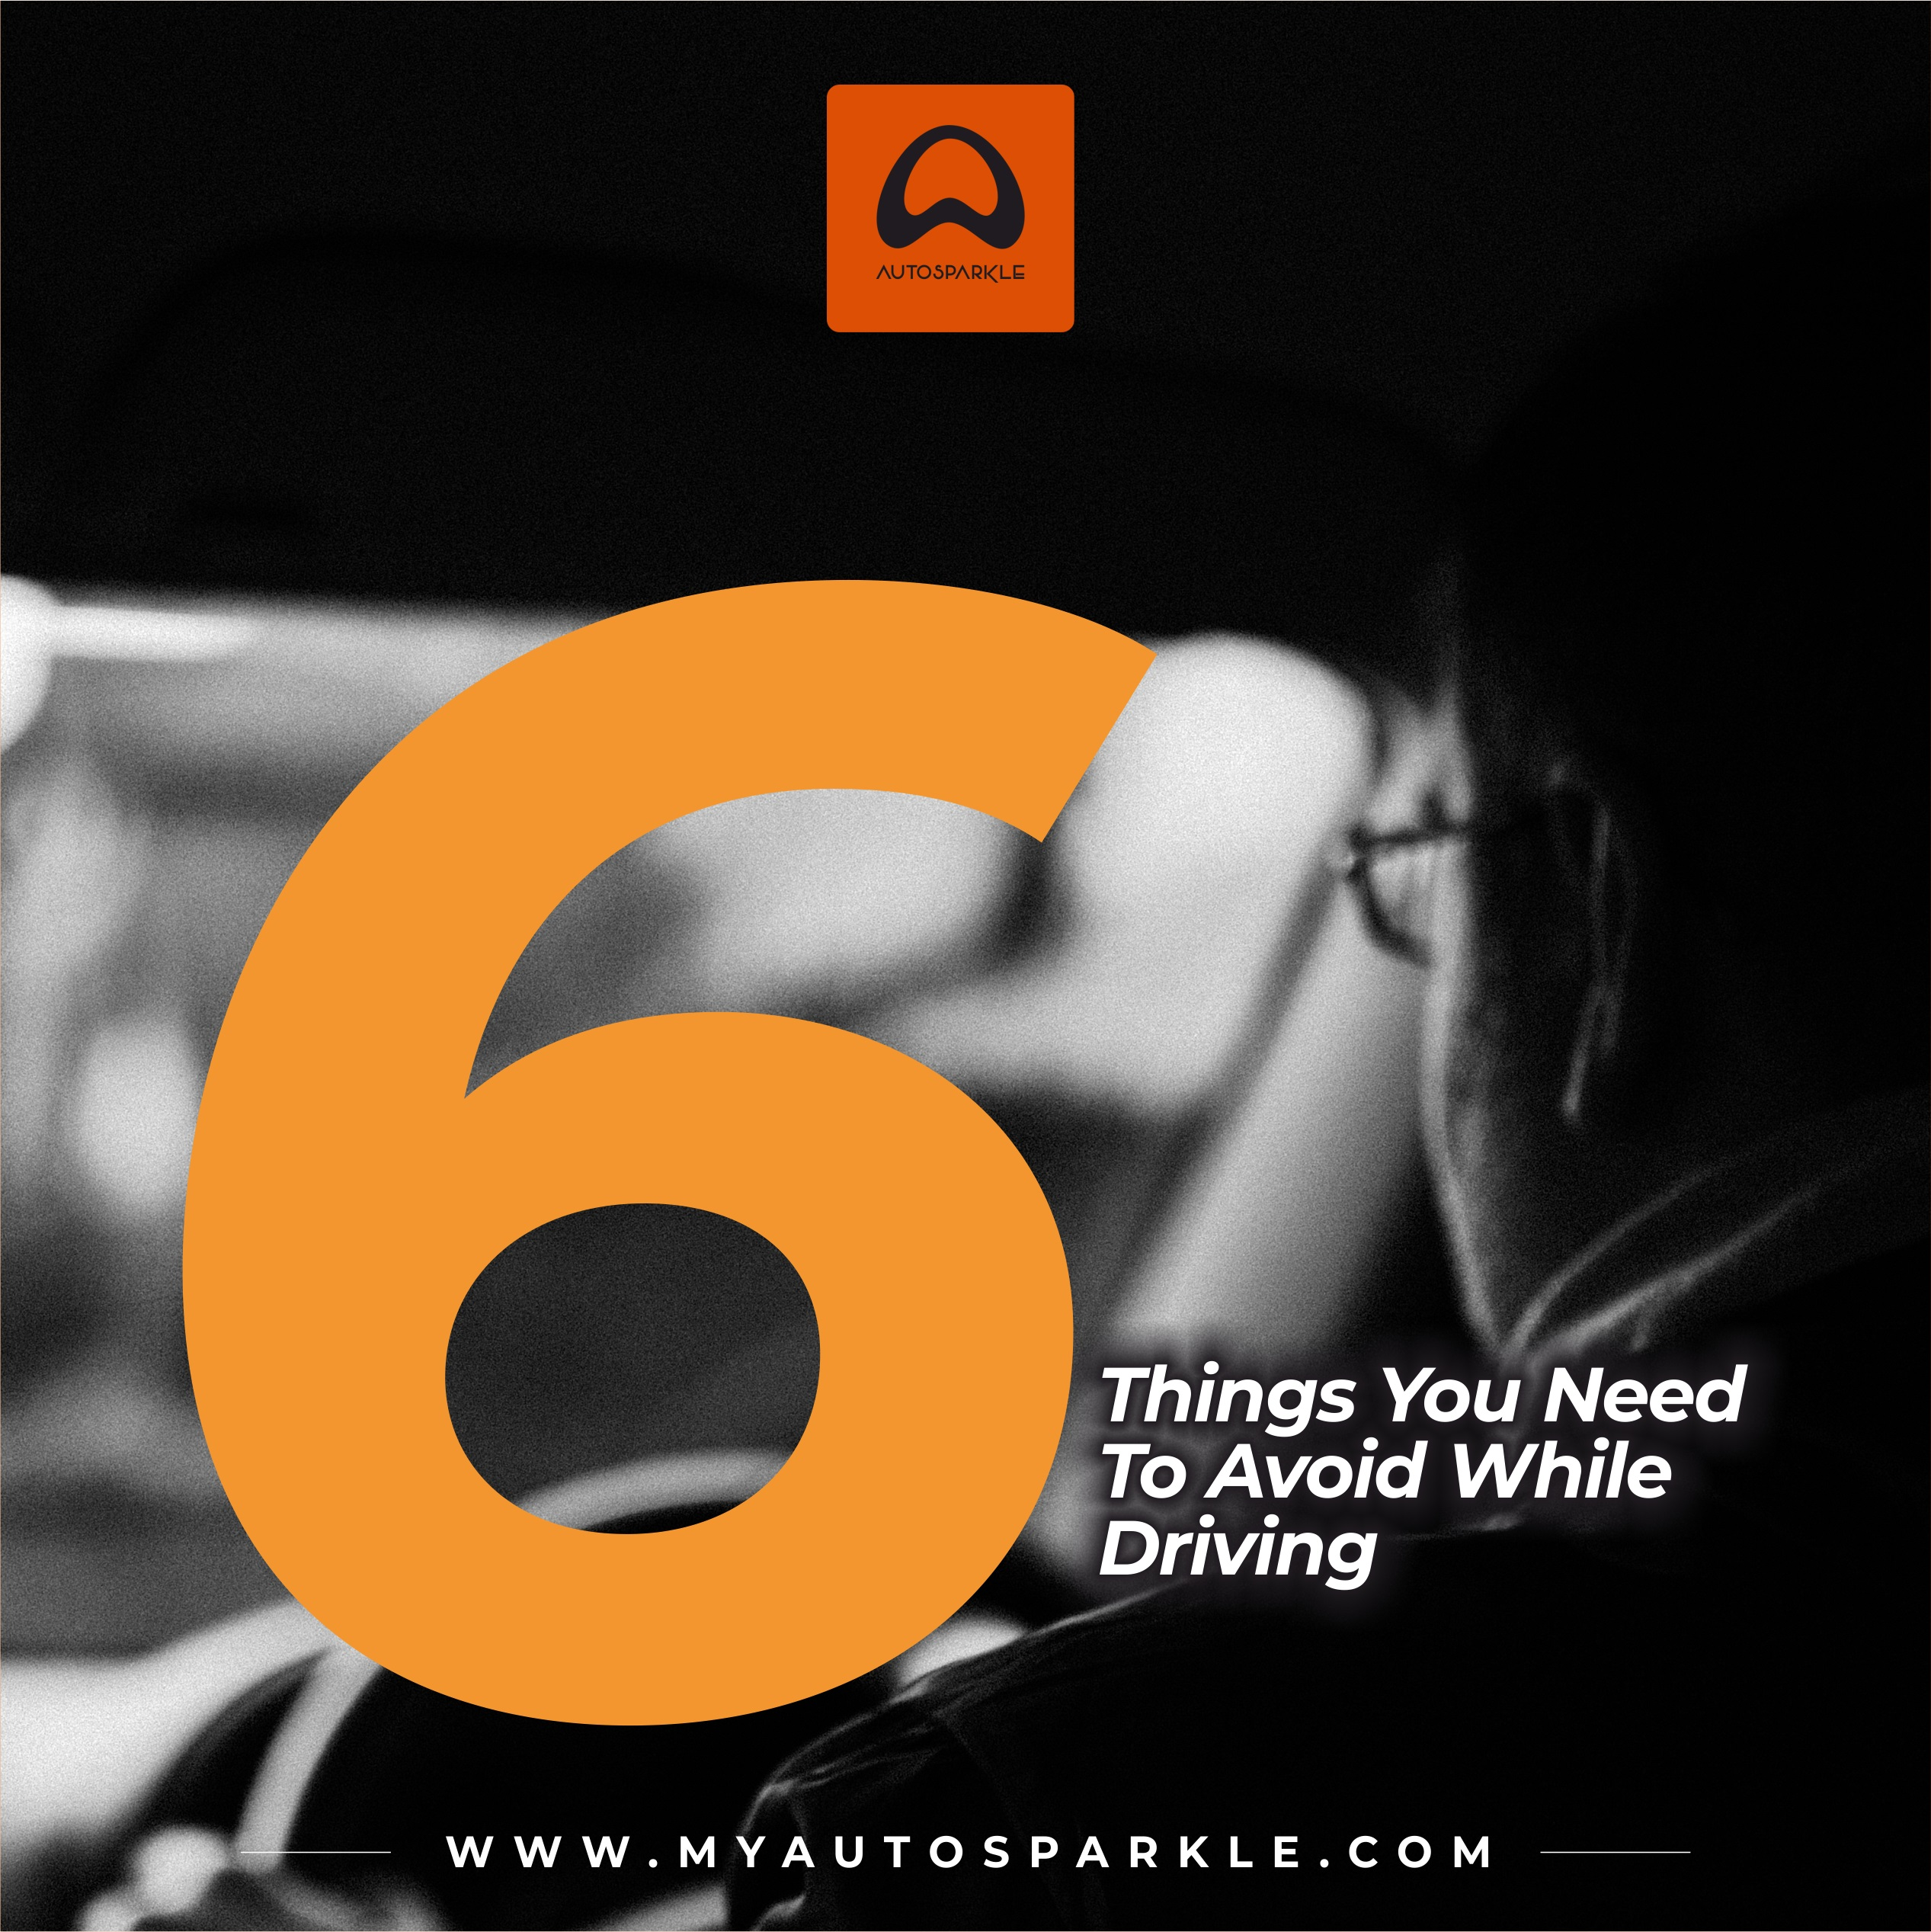 6 things you need to avoid while driving